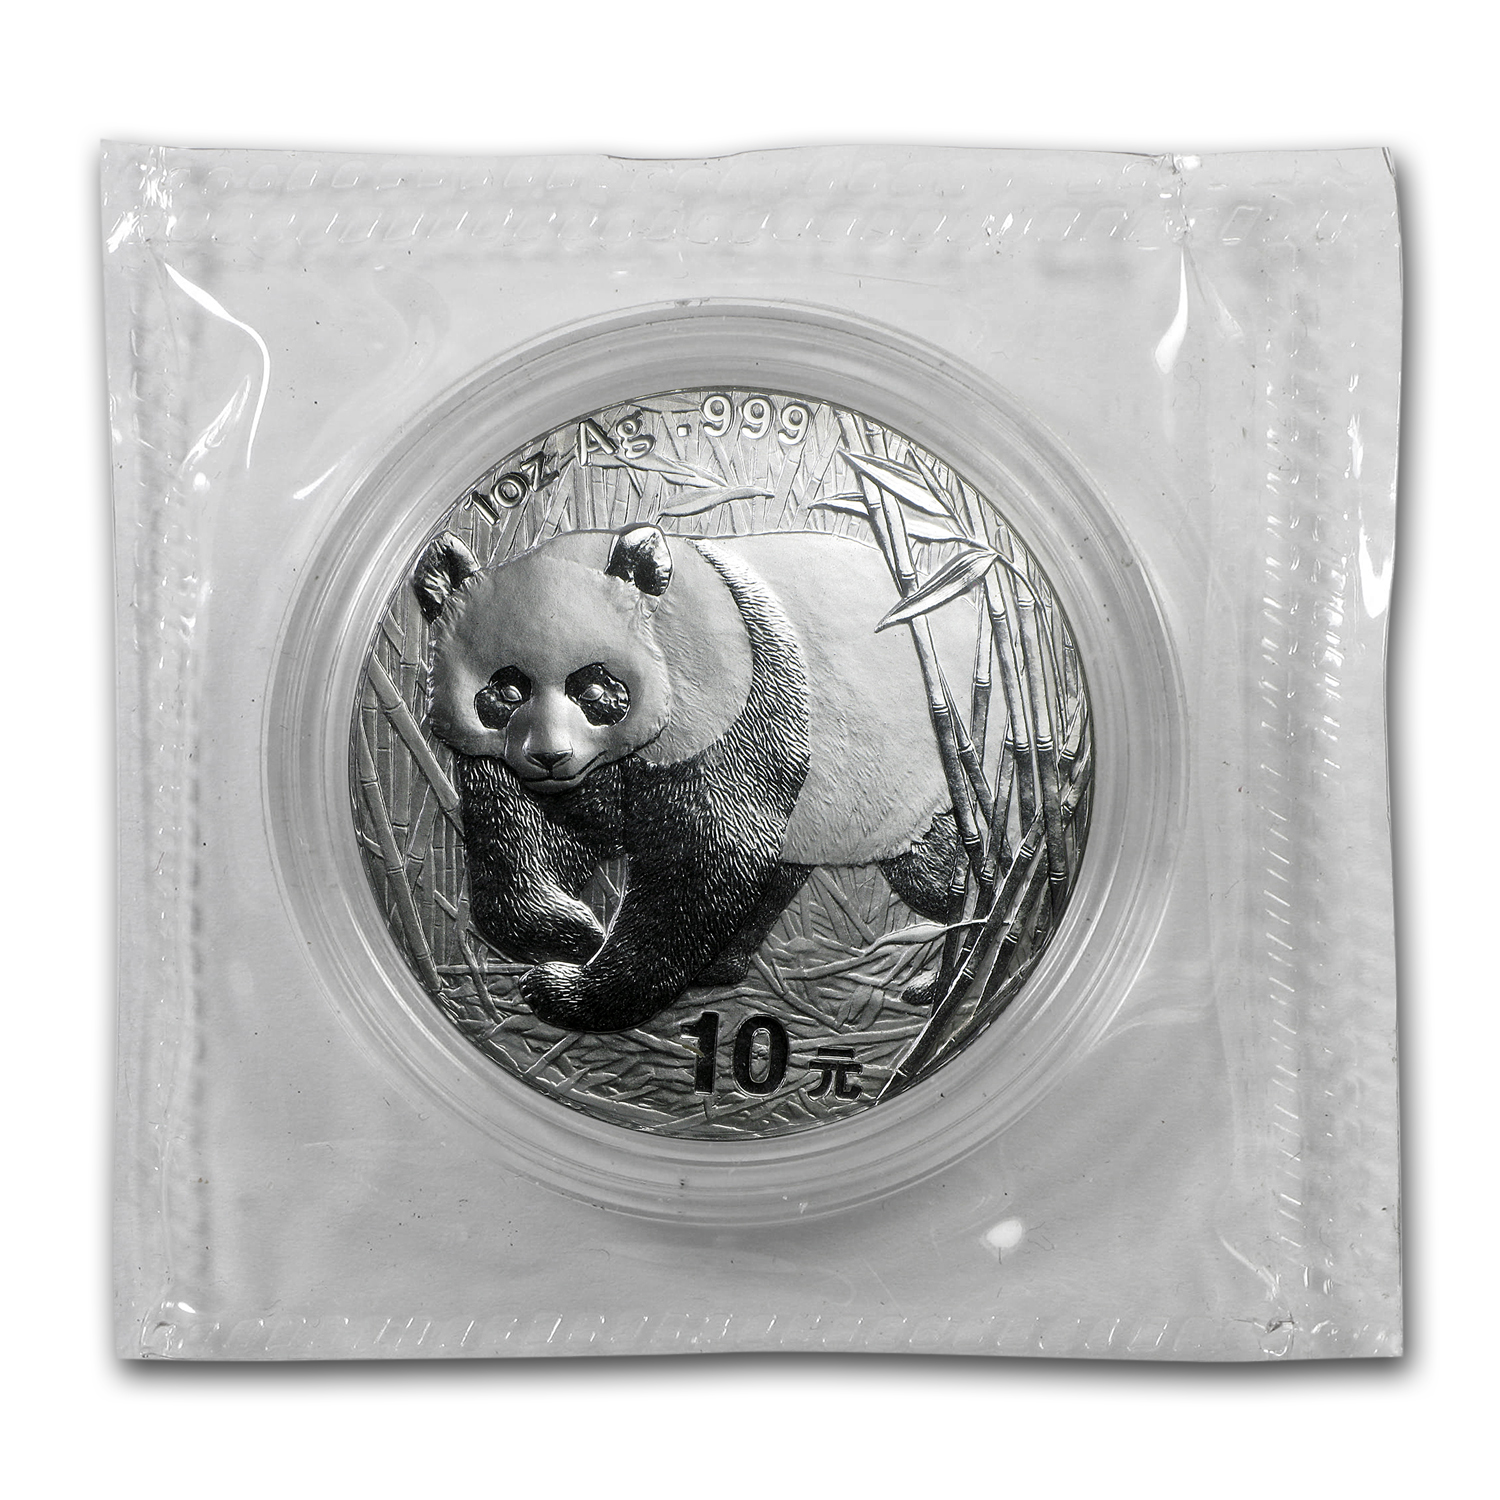 2001 1 oz Silver Chinese Panda - (Sealed)